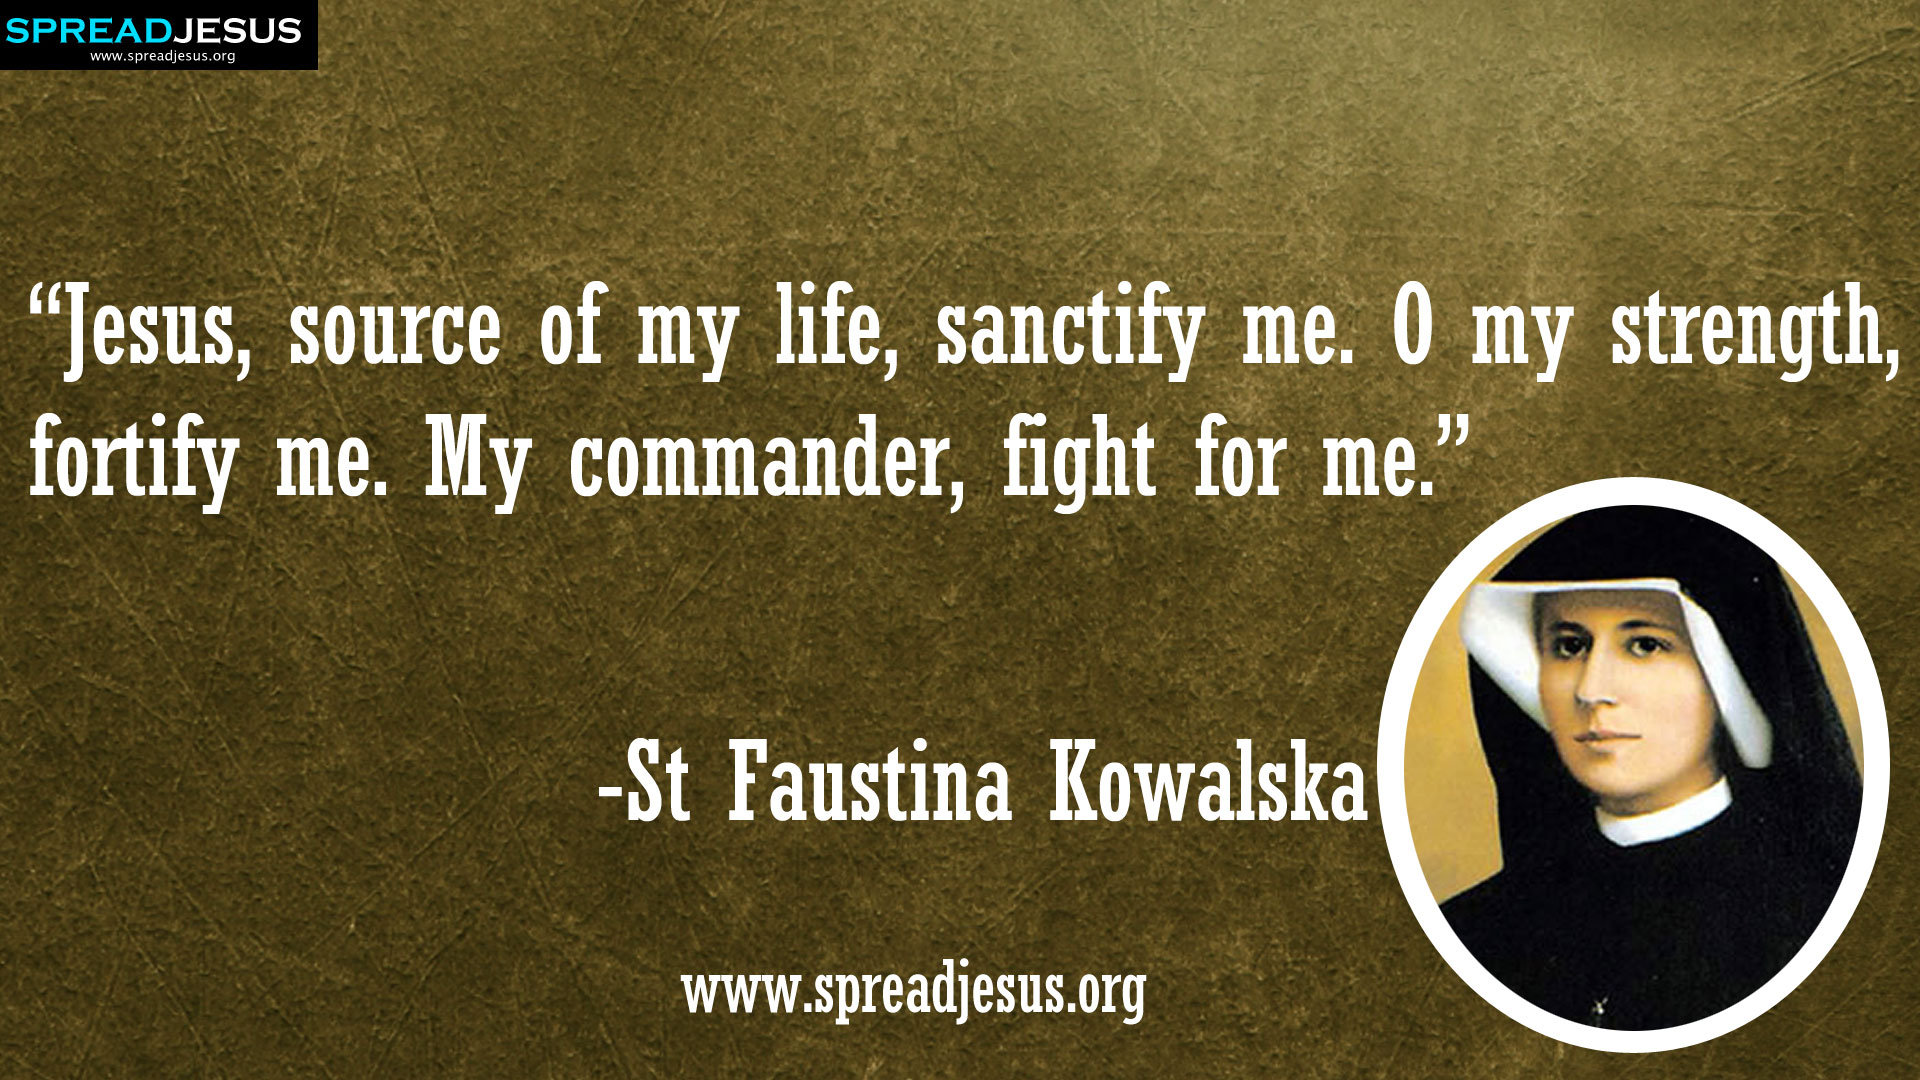 "St Faustina Kowalska:St Faustina Kowaiska QUOTES HD-WALLPAPERS DOWNLOAD:CATHOLIC SAINT QUOTES HD-WALLPAPERS DOWNLOAD-""Jesus, source of my life, sanctify me. O my strength, fortify me.-St Faustina Kowalska-spreadjesus.org"